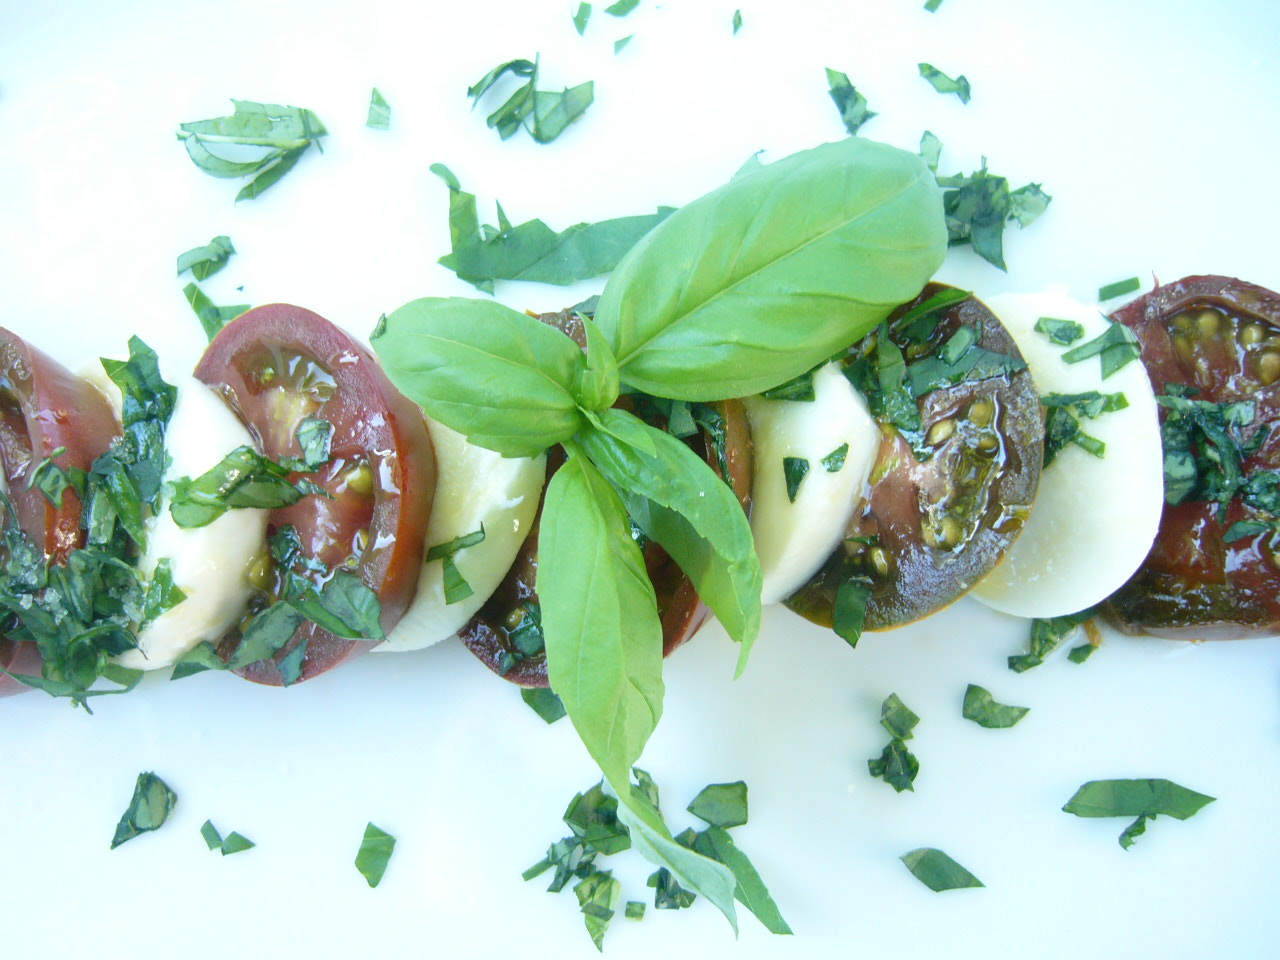 """""""Layered"""" Caprese Salad (made with heirloom tomatoes - they look green but are actually ripe)"""